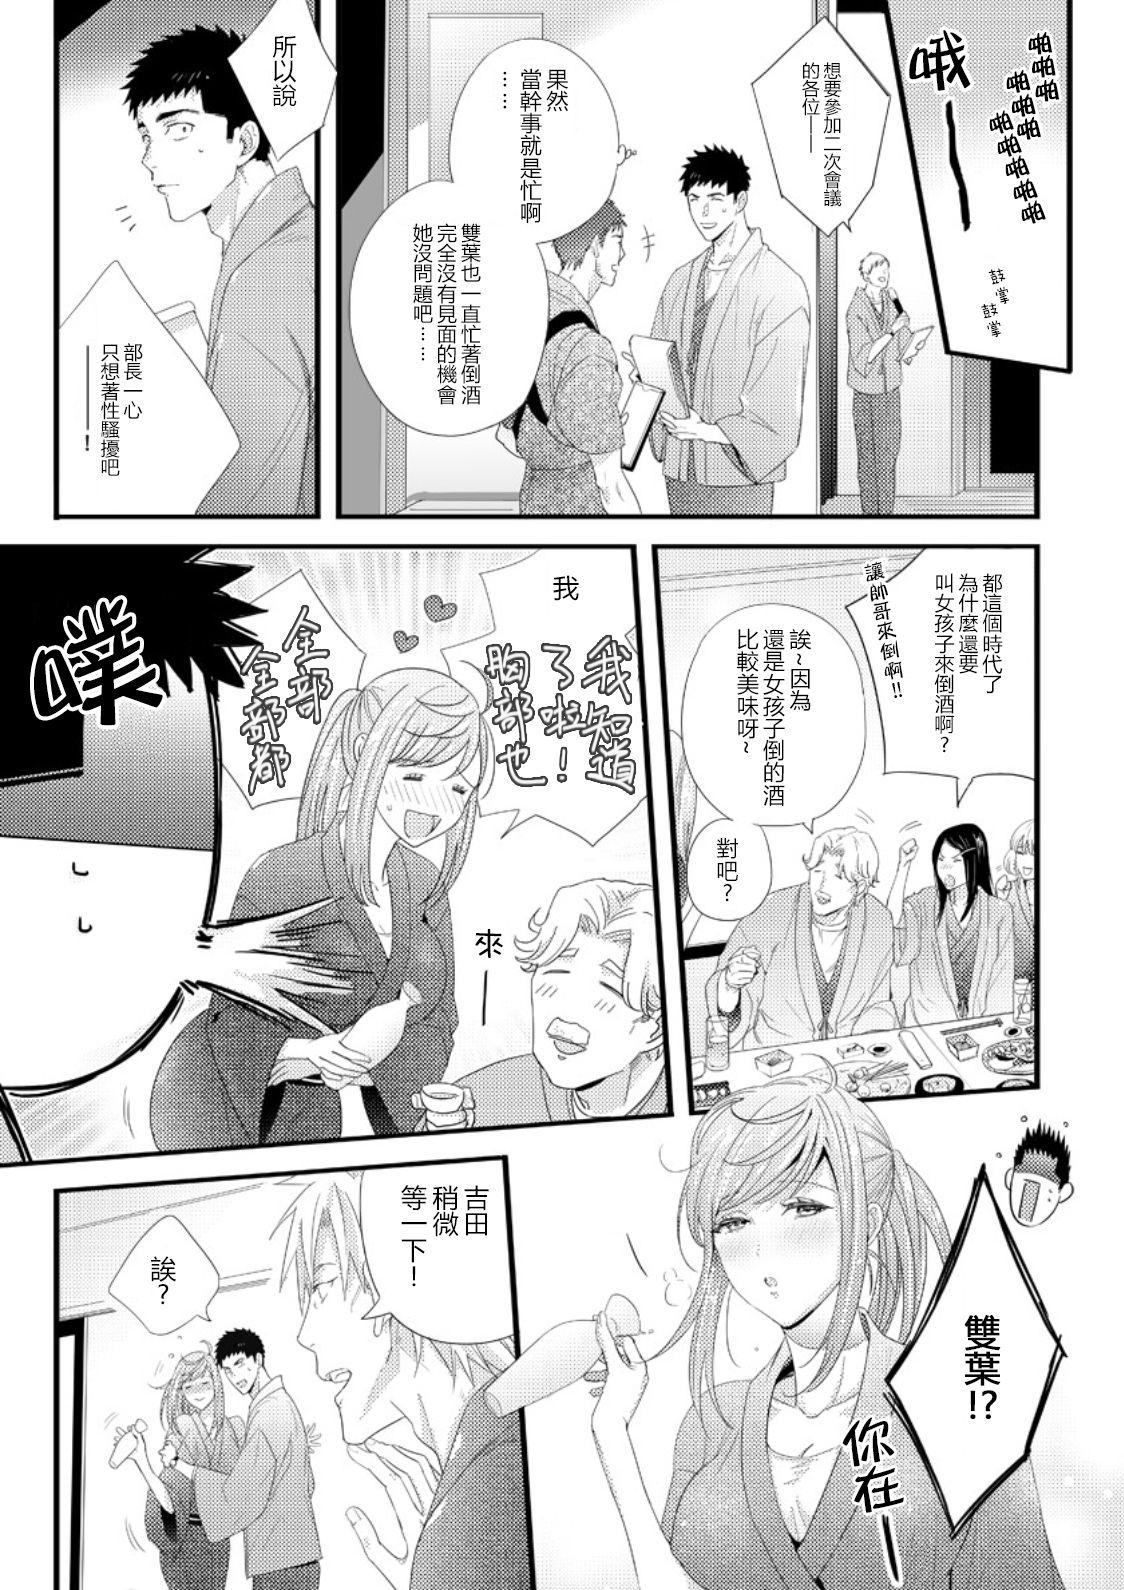 Please Let Me Hold You Futaba-San! Ch.1 10